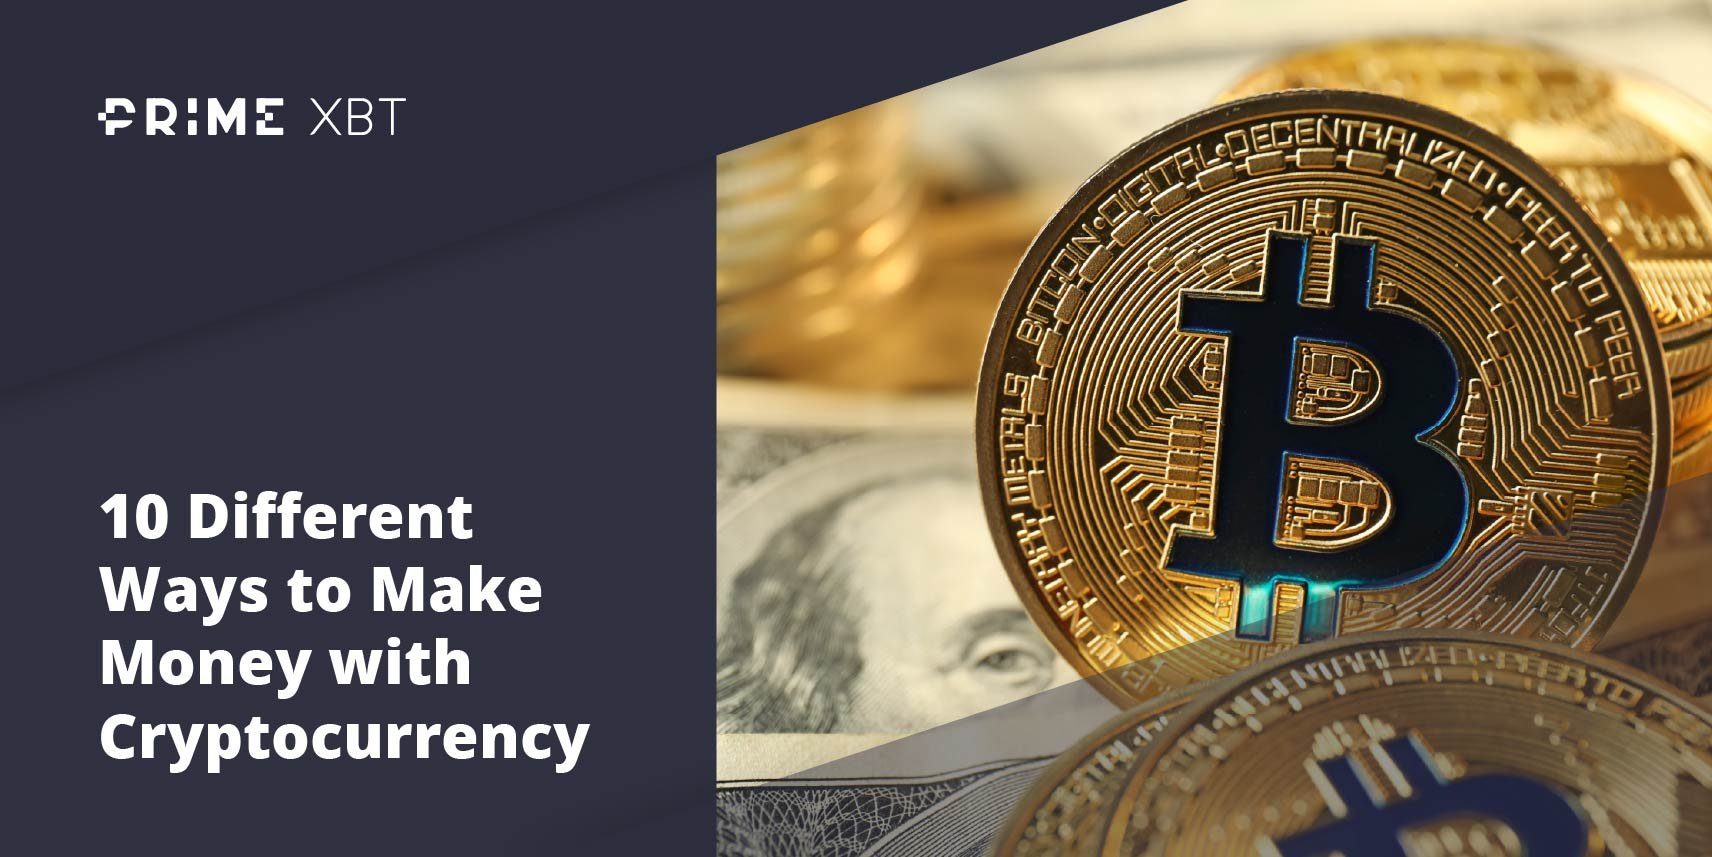 10 Different Ways to Make Money with Cryptocurrency - 2020 03 06 17.19.23